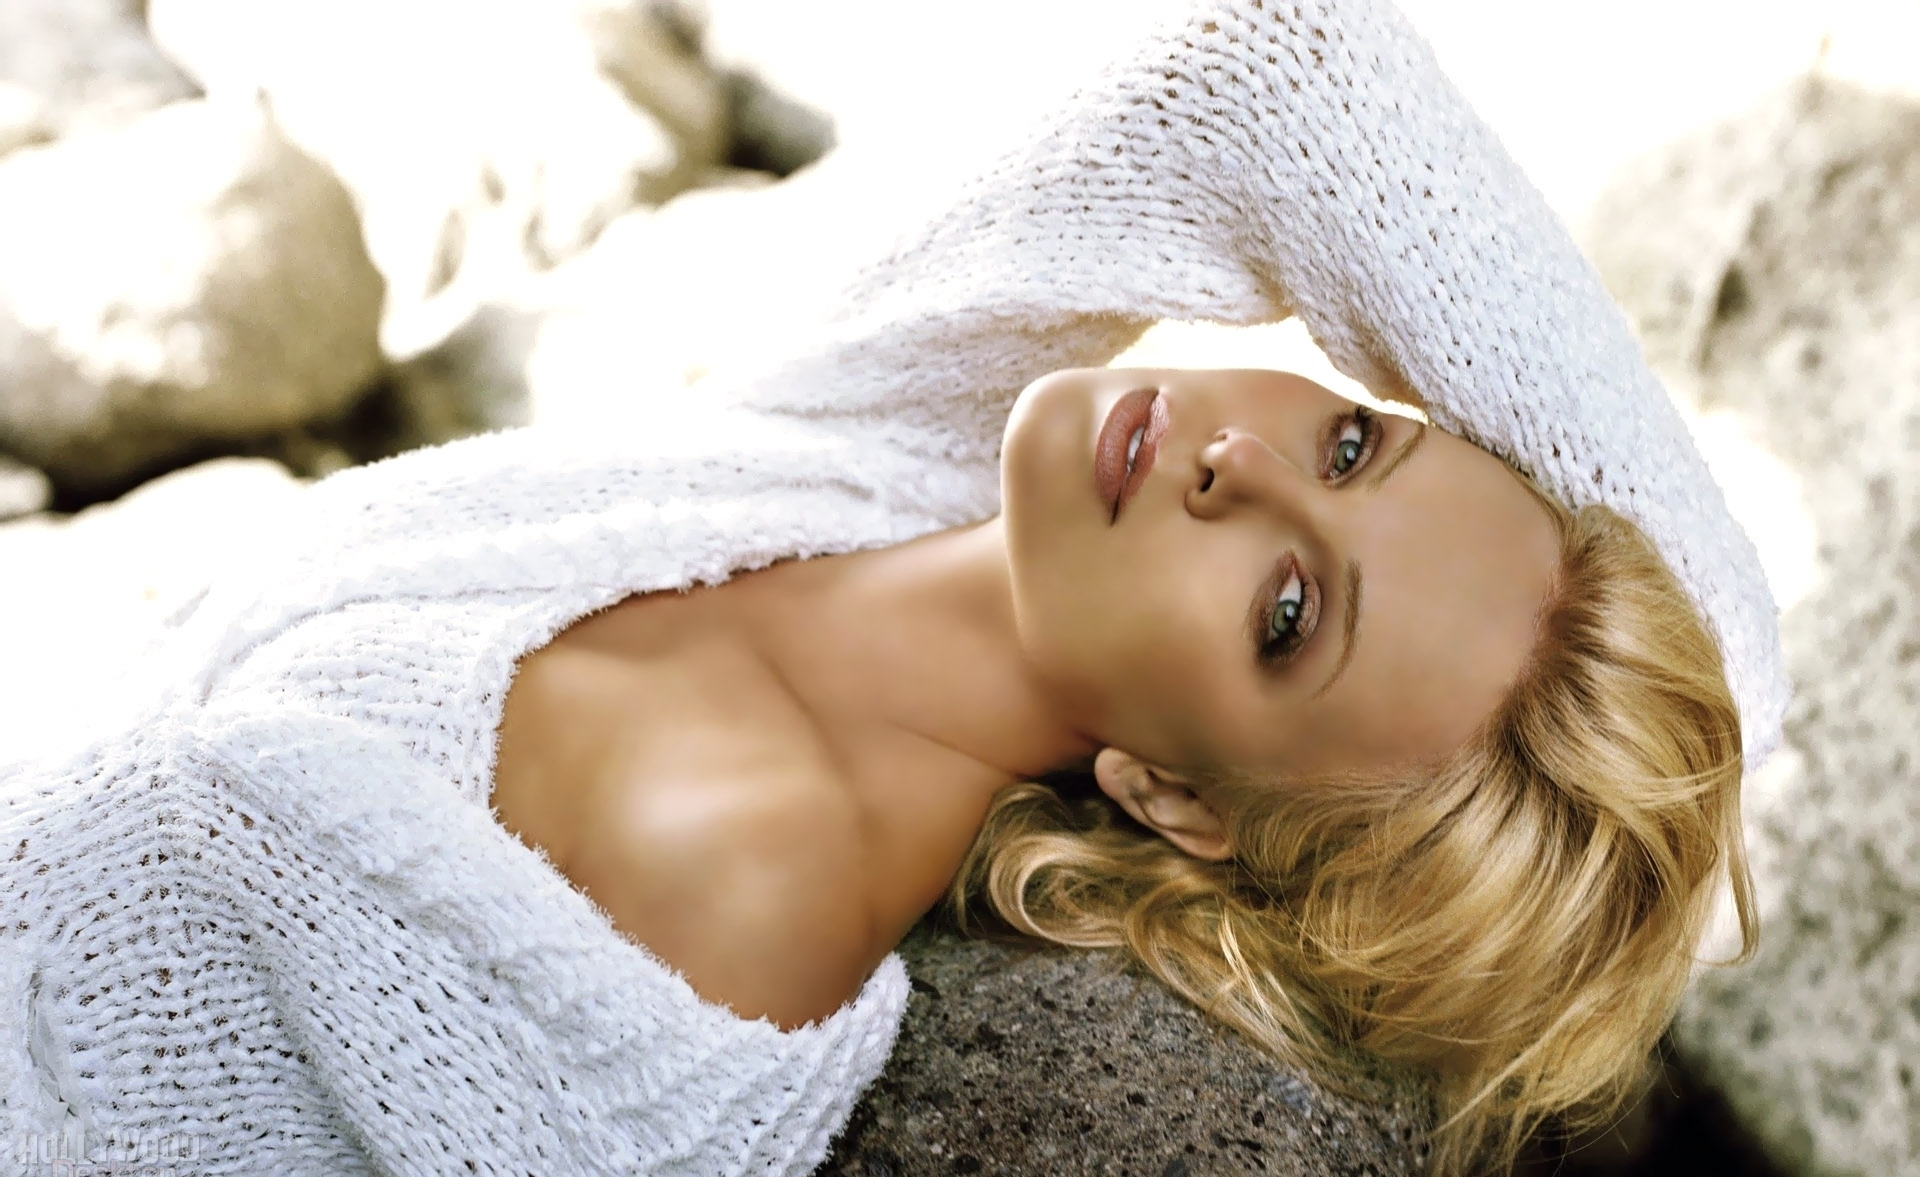 Charlize Theron Wallpaper Iphone Sexy Charlize Theron Hd Wallpapers Pictures All Hd